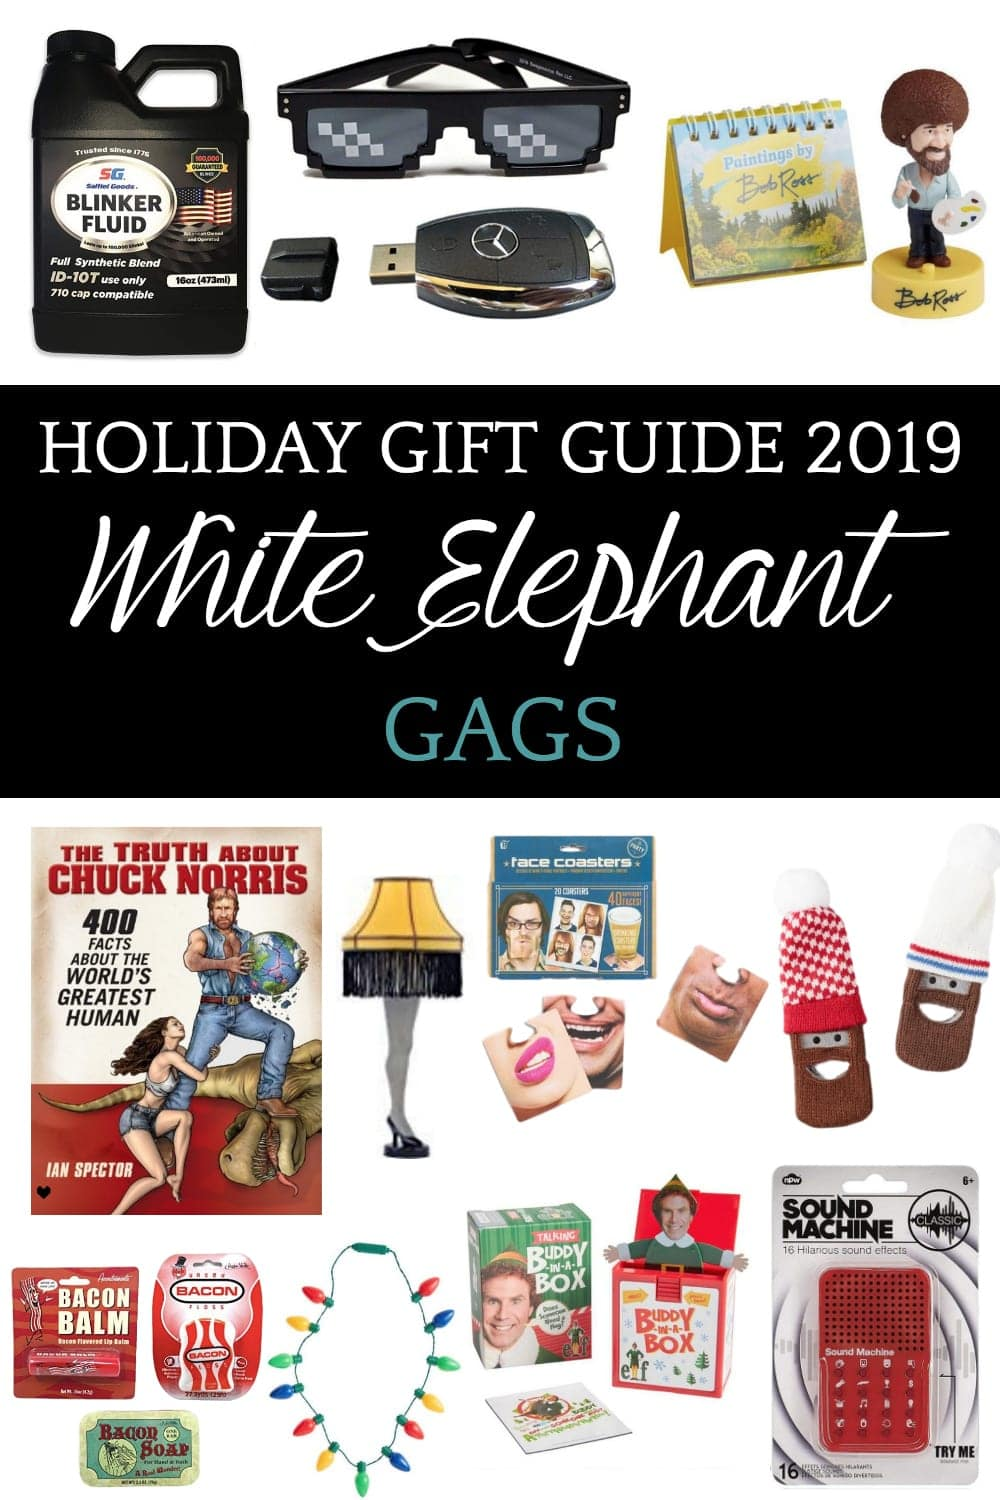 White Elephant Gag Gift Ideas | 40 white elephant gift ideas that are hilarious, useful, or for kids to make your next Christmas party a hit. #whiteelephantgifts